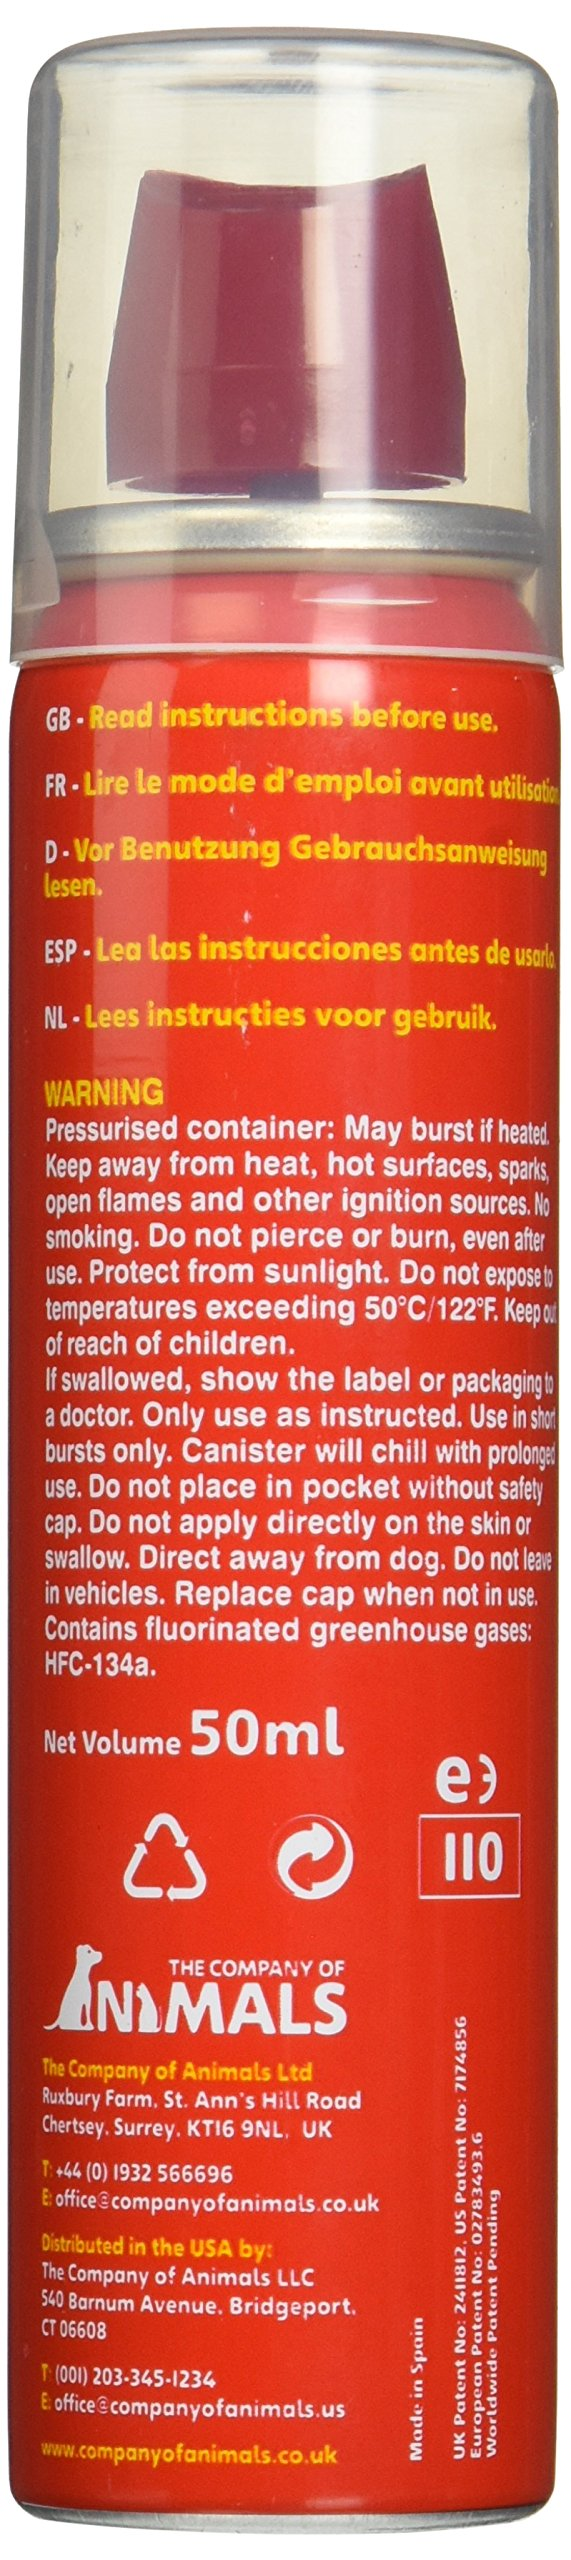 The Company of Animals Pet Corrector (4 Pack), 50ml by The Company of Animals (Image #3)